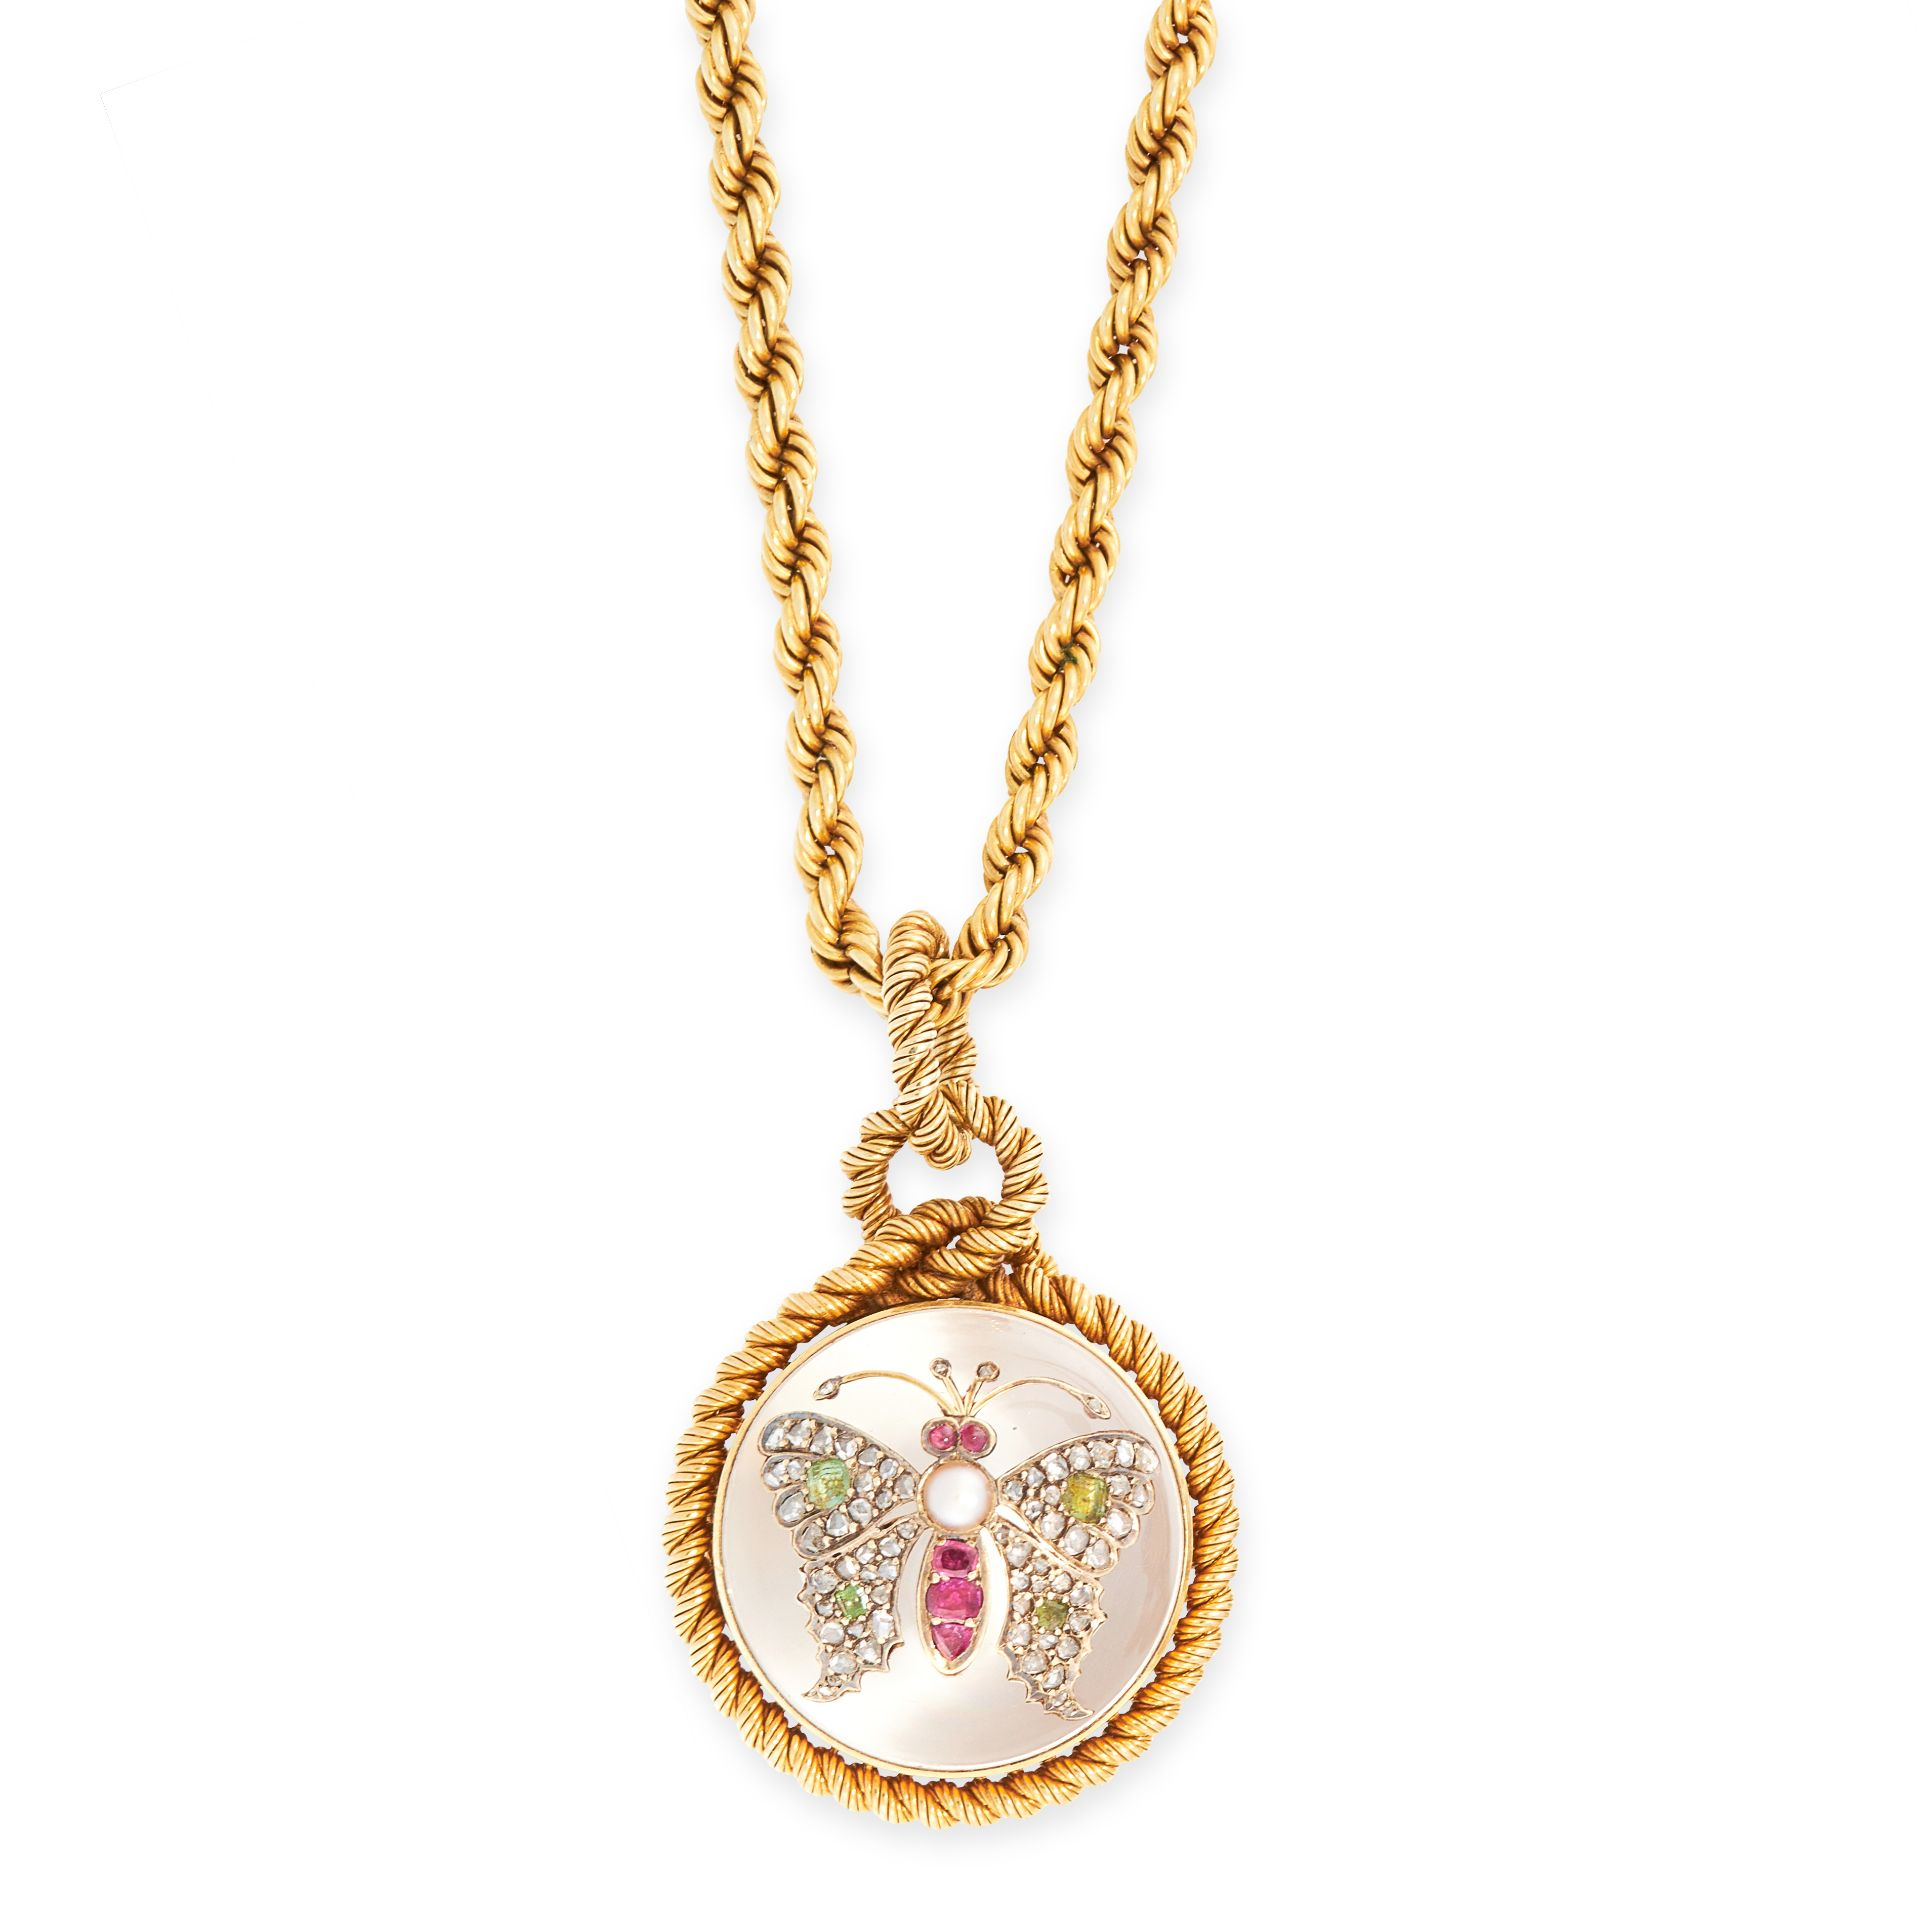 AN ANTIQUE RUBY, PEARL, DIAMOND, CHRYSOLITE AND ROCK CRYSTAL MOURNING LOCKET PENDANT AND CHAIN, 19TH